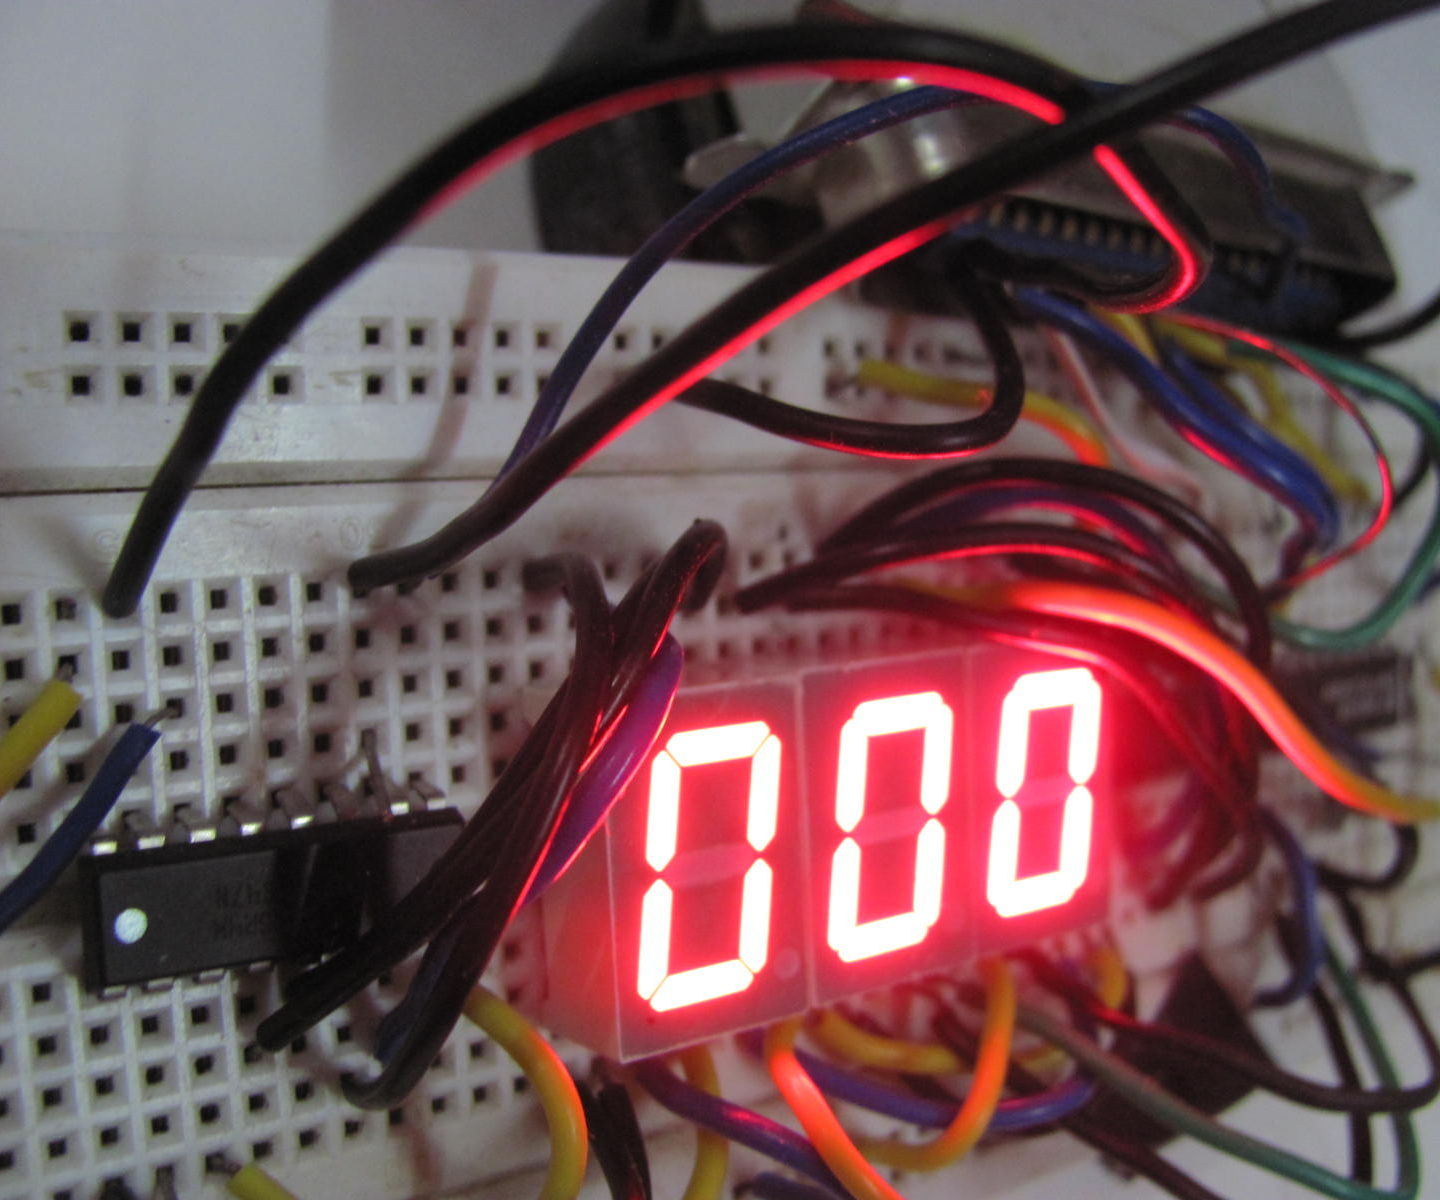 Turn any PC into a microcontroller for free in 4 steps